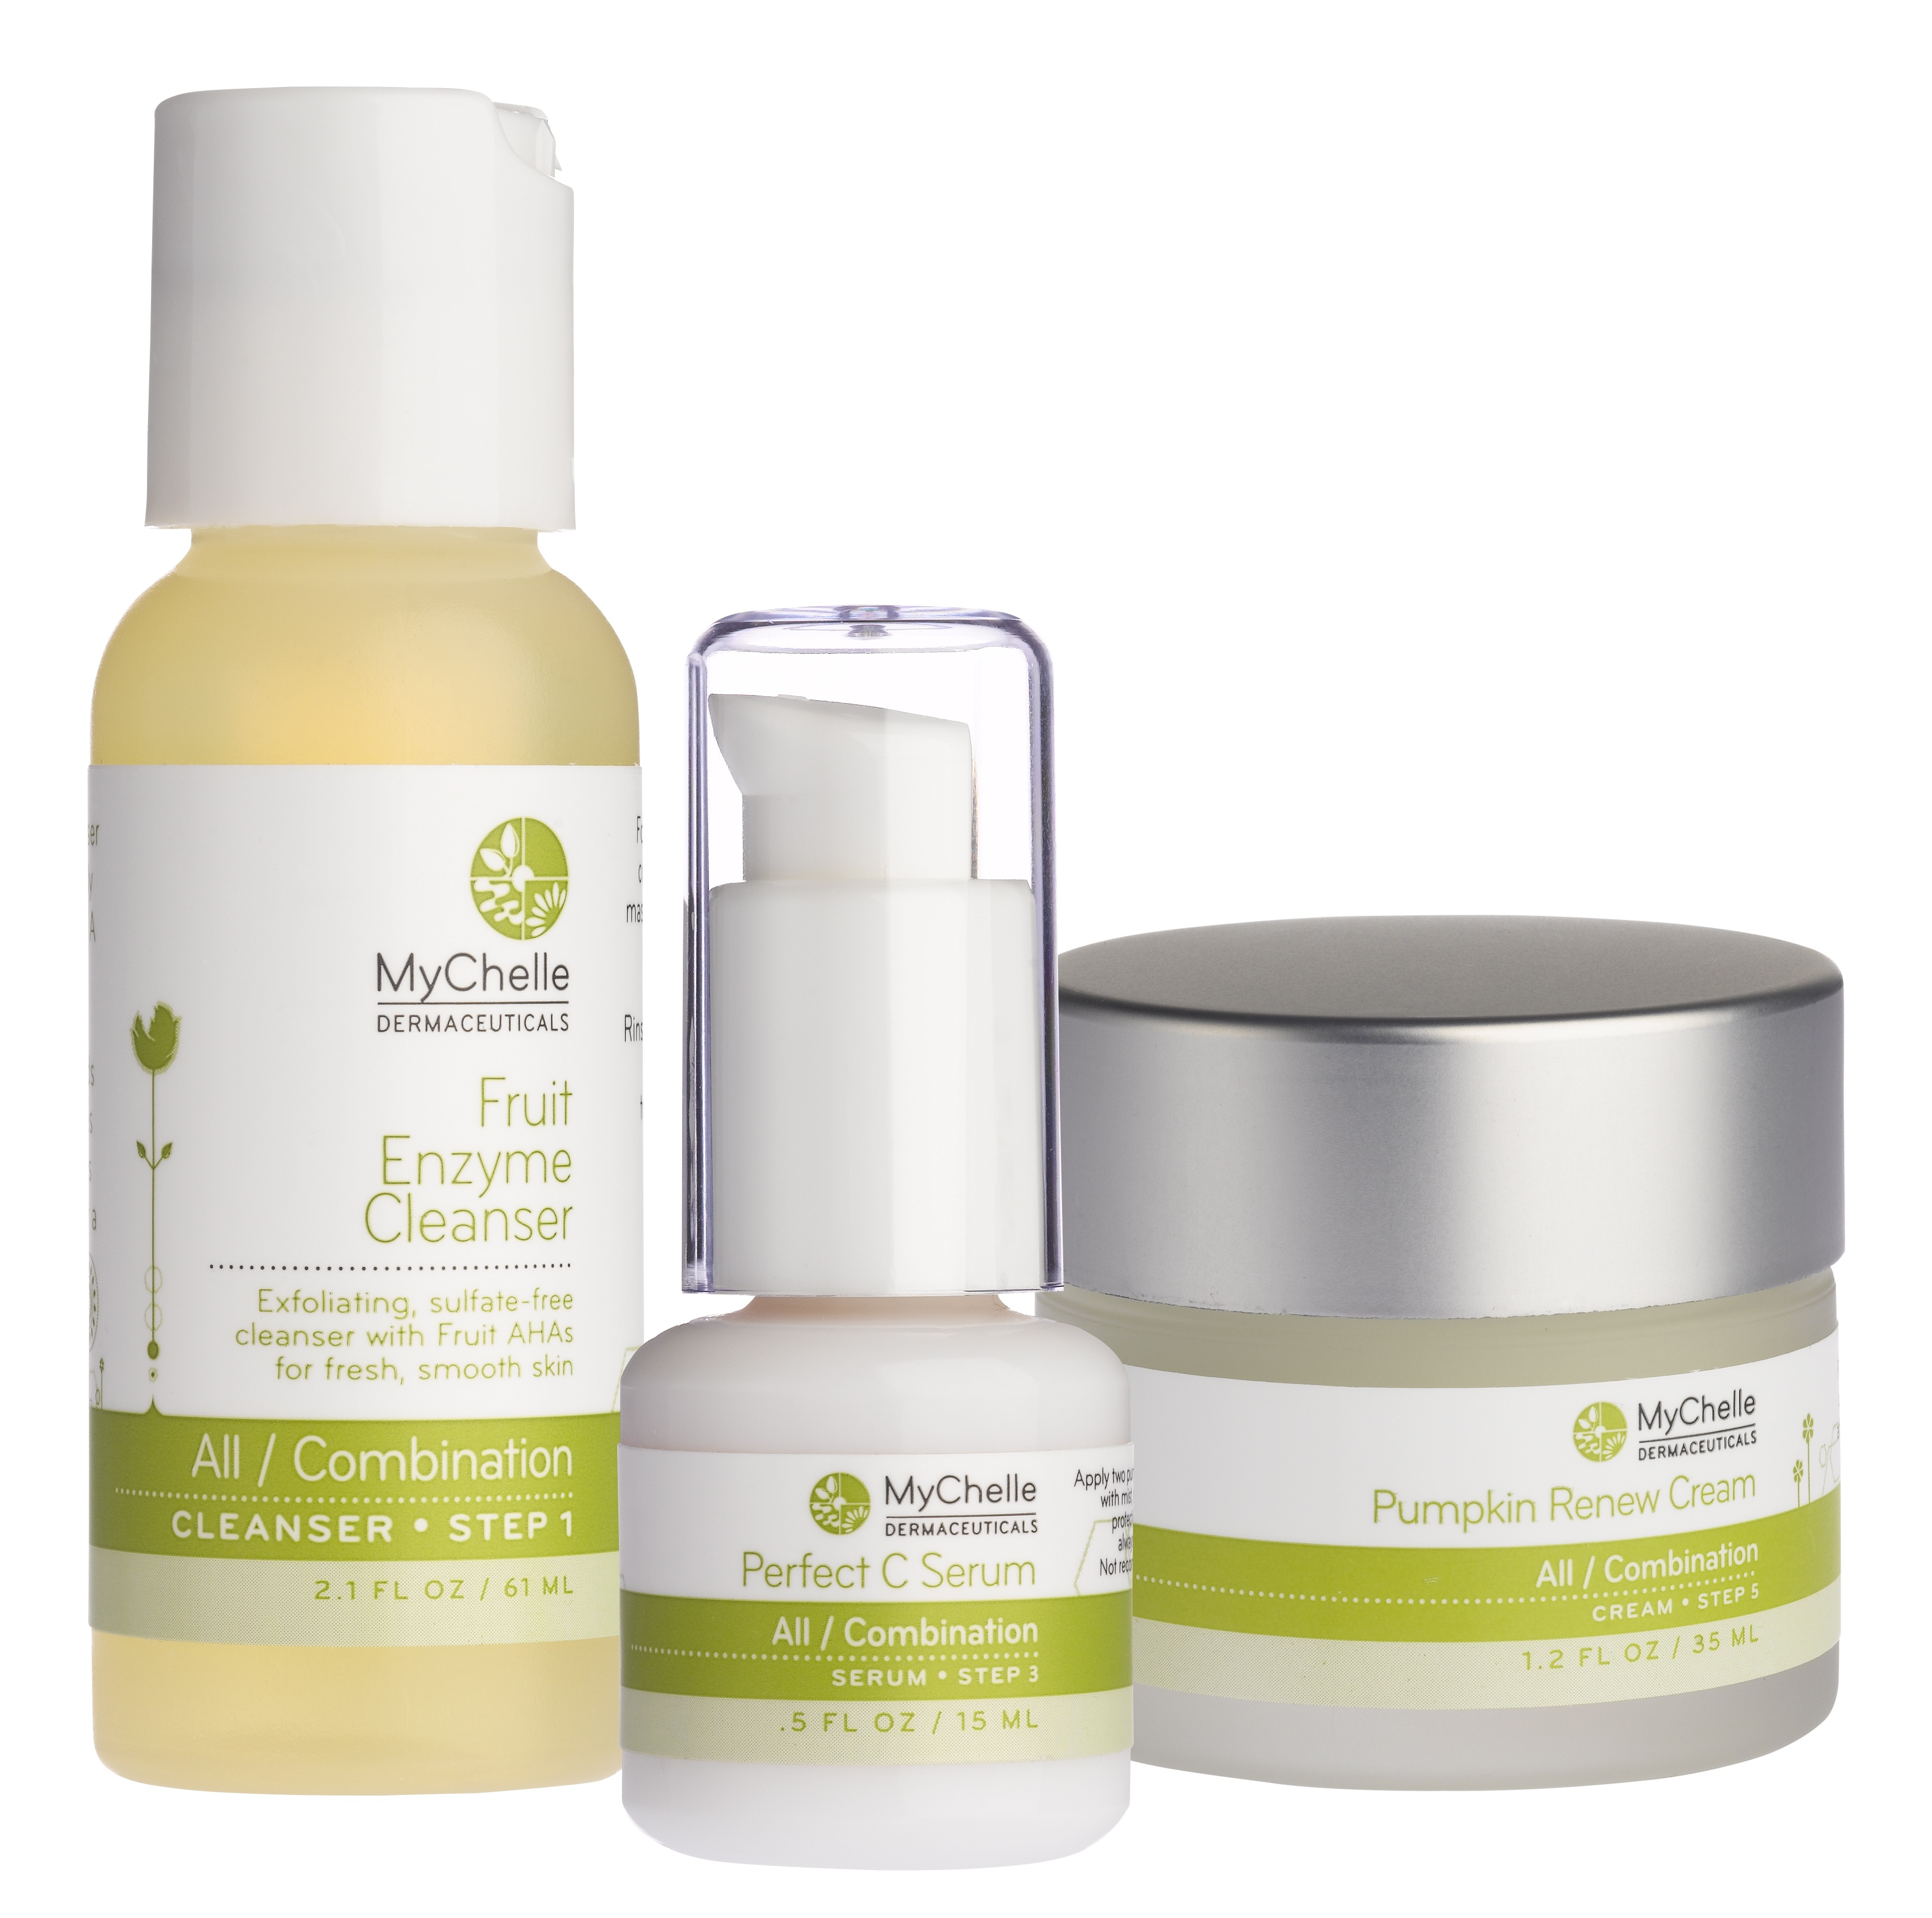 Mychelle Daily Basics Kit Giveaway!